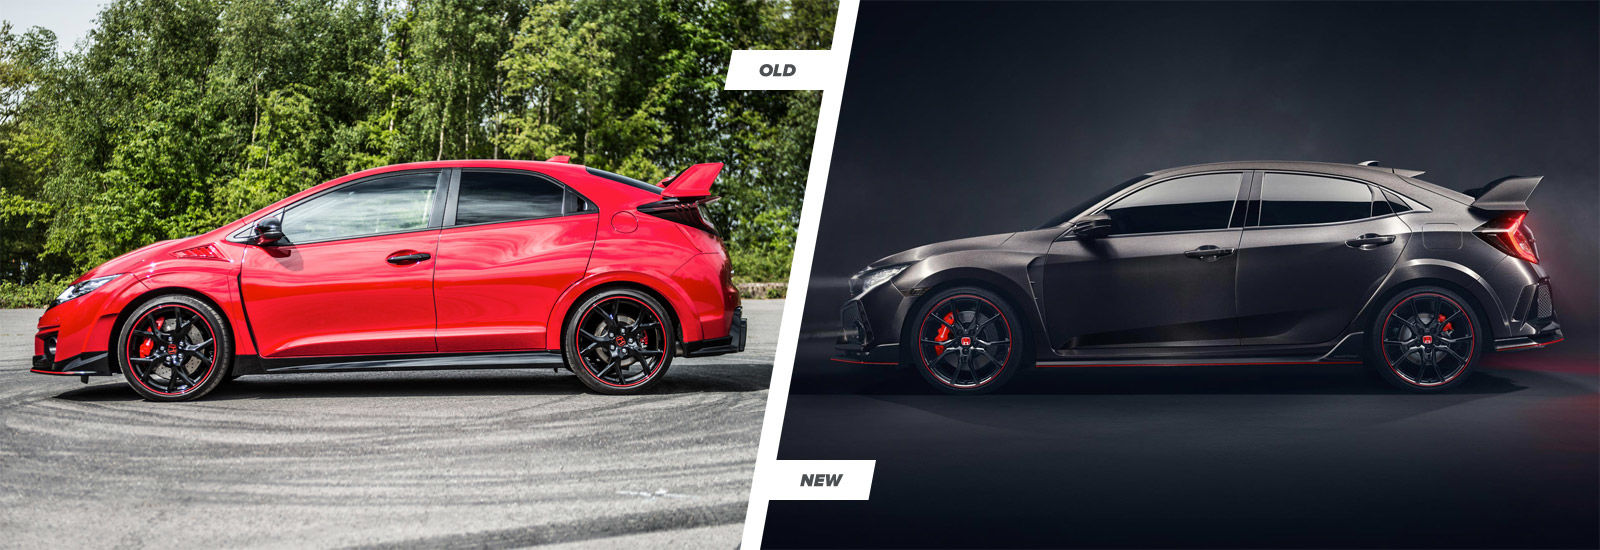 New Honda Civic Type R New Vs Old  pared together with 1955 1960 Golden Sahara By George Barris furthermore Focus Hatchback Ii 2007 furthermore 929 as well Micra K12 2003. on older ford car models